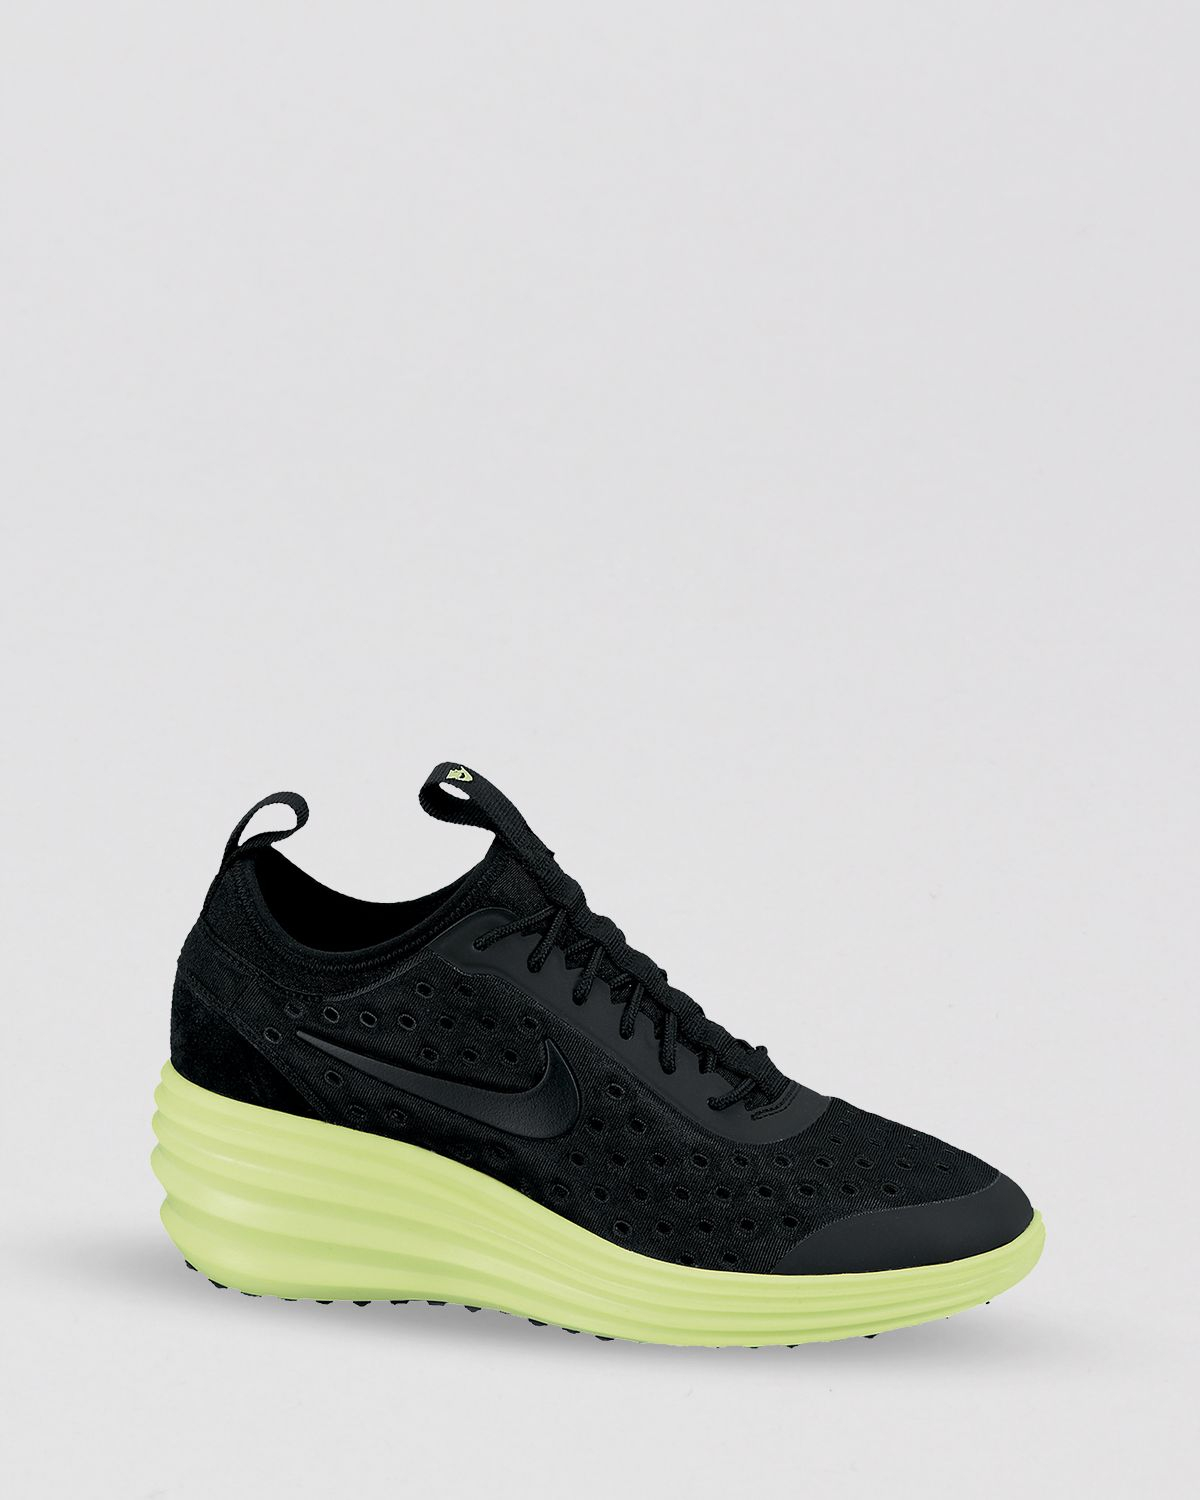 nike lace up sneakers womens lunar elite sky hi in black black black volt lyst. Black Bedroom Furniture Sets. Home Design Ideas